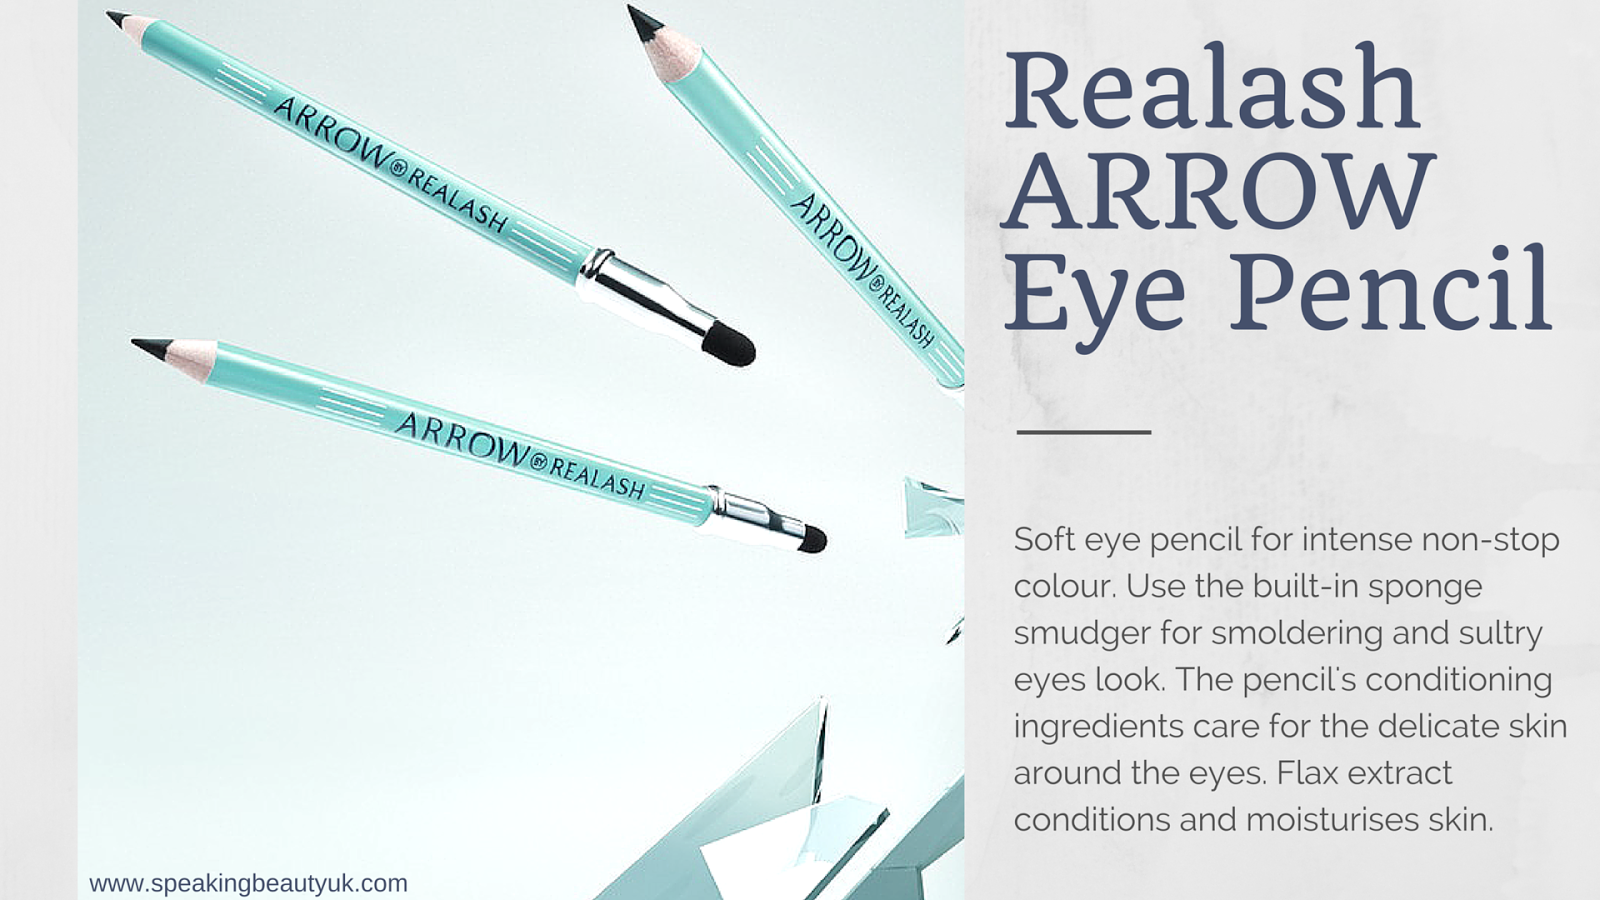 Realash Arrow Eye Pencil Giveaway